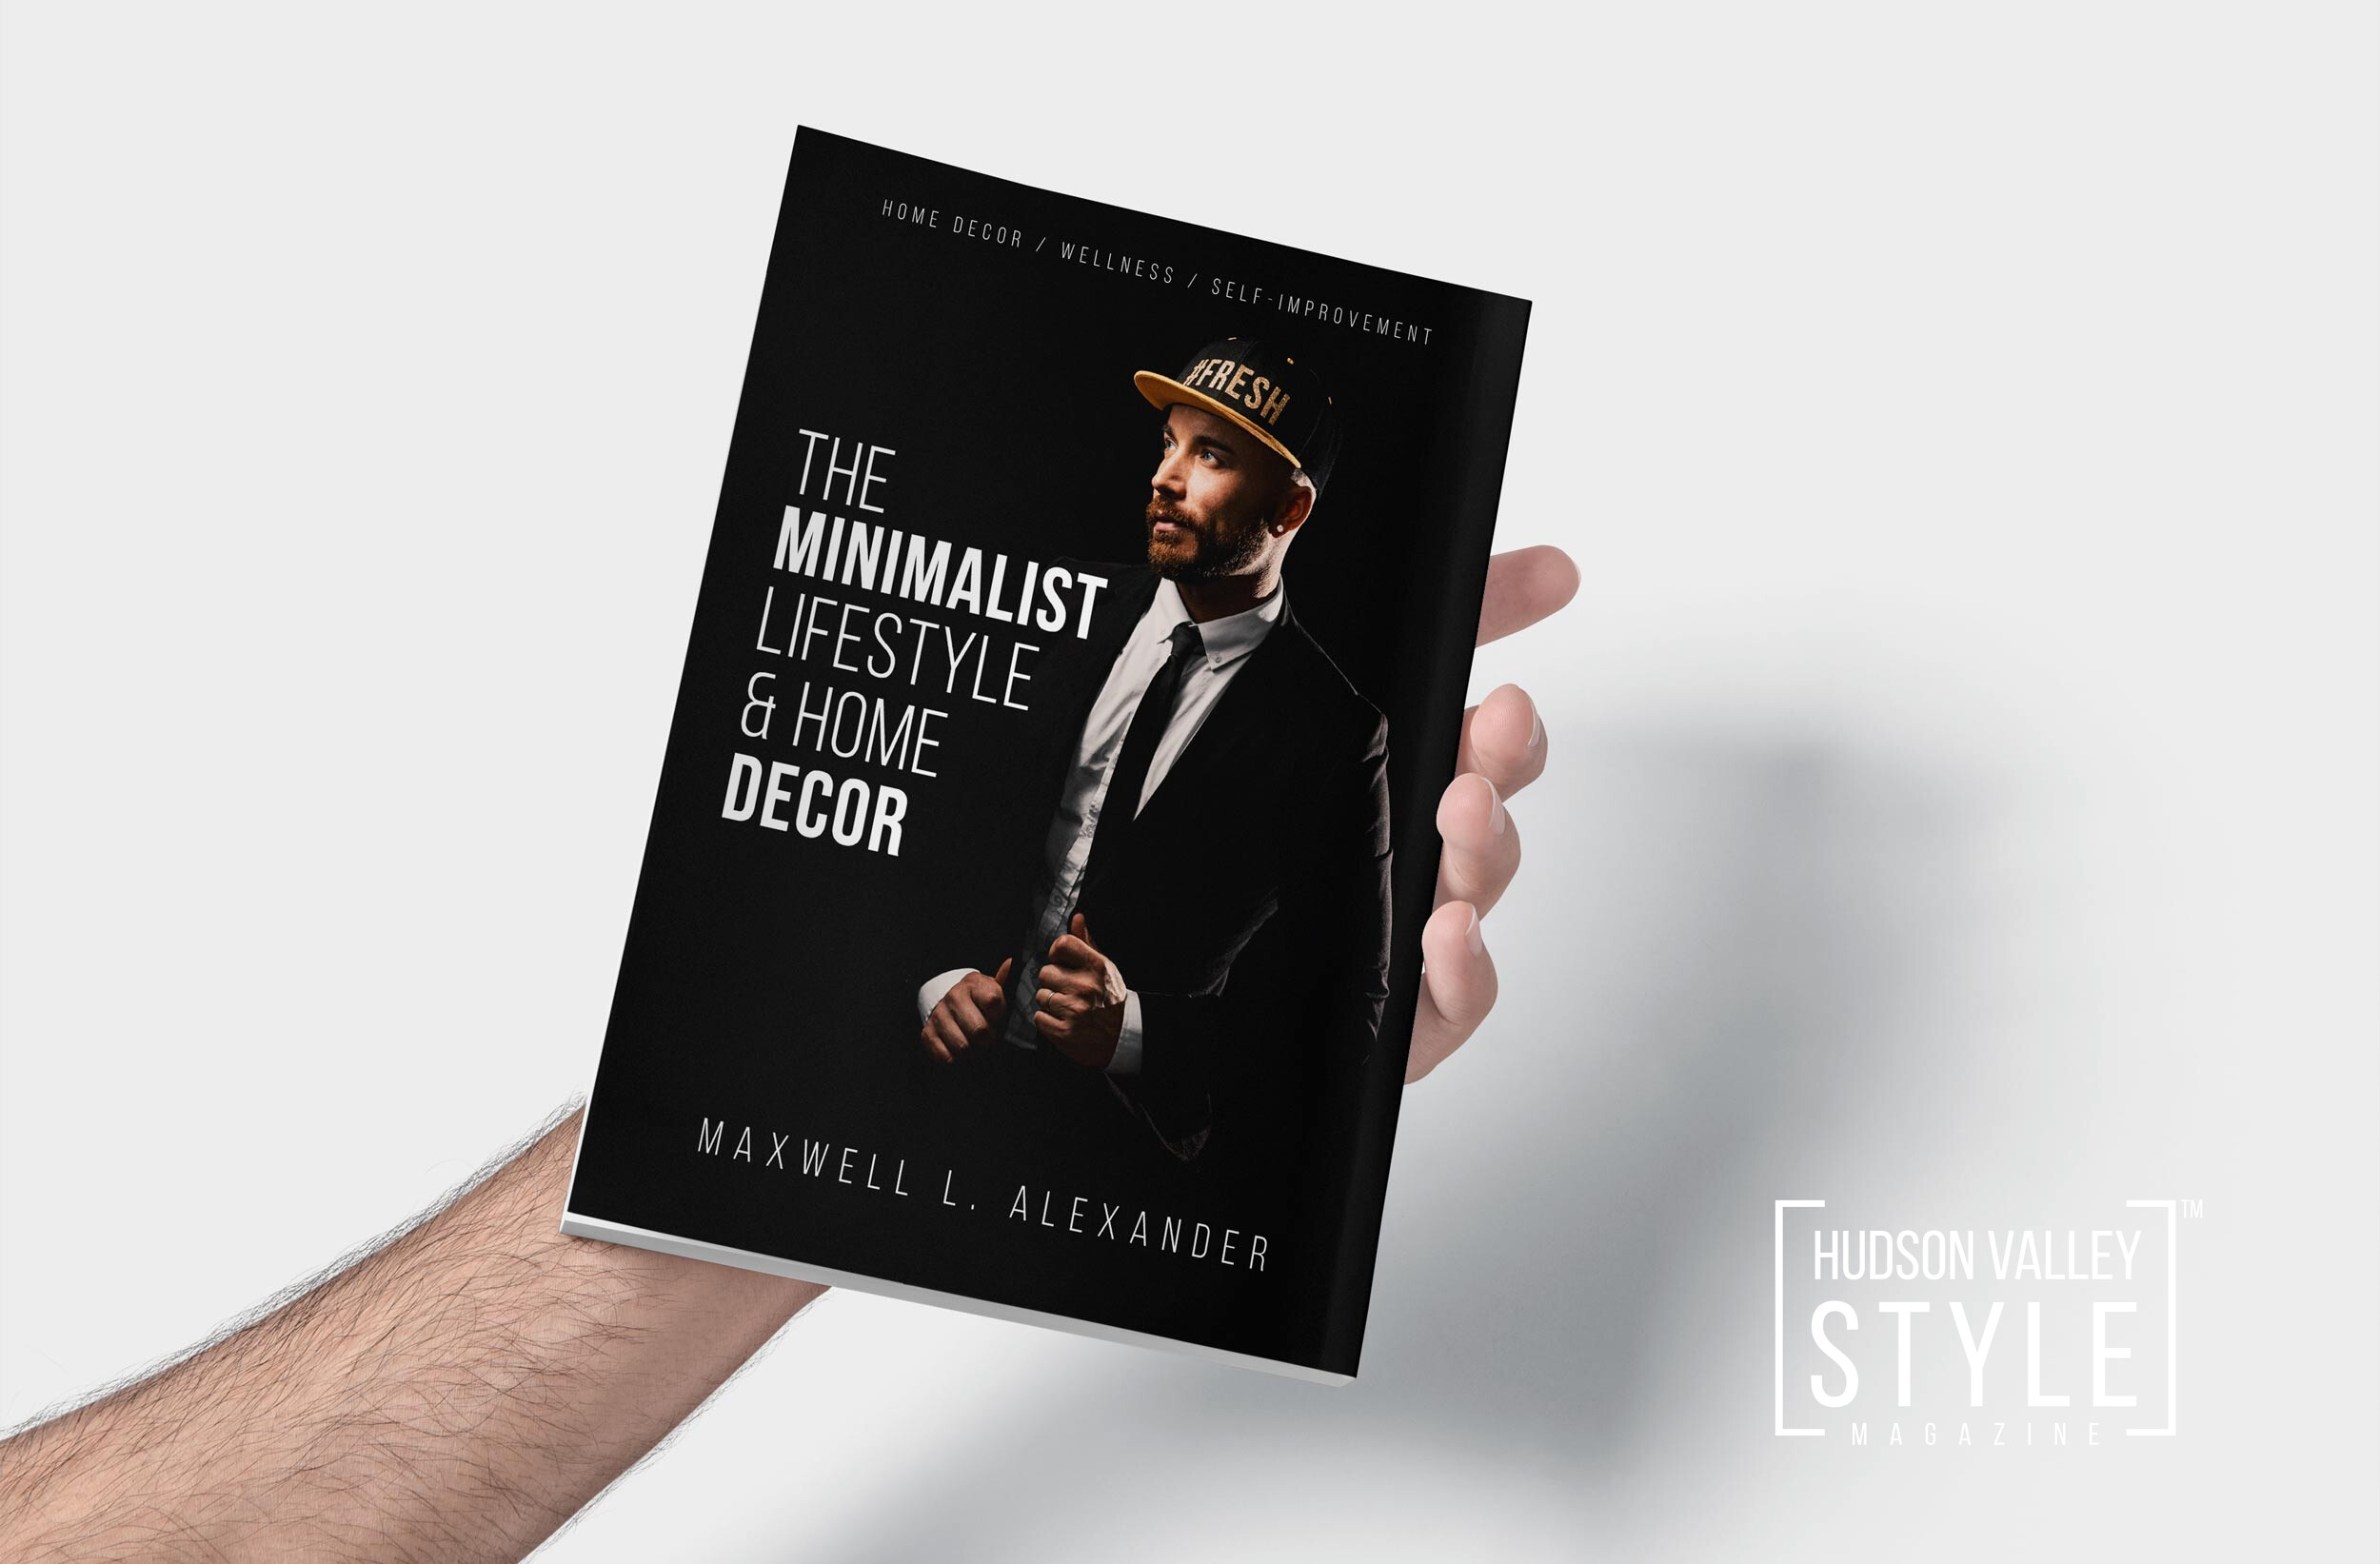 The Minimalist Lifestyle and Home Decor – New Book by Maxwell Alexander